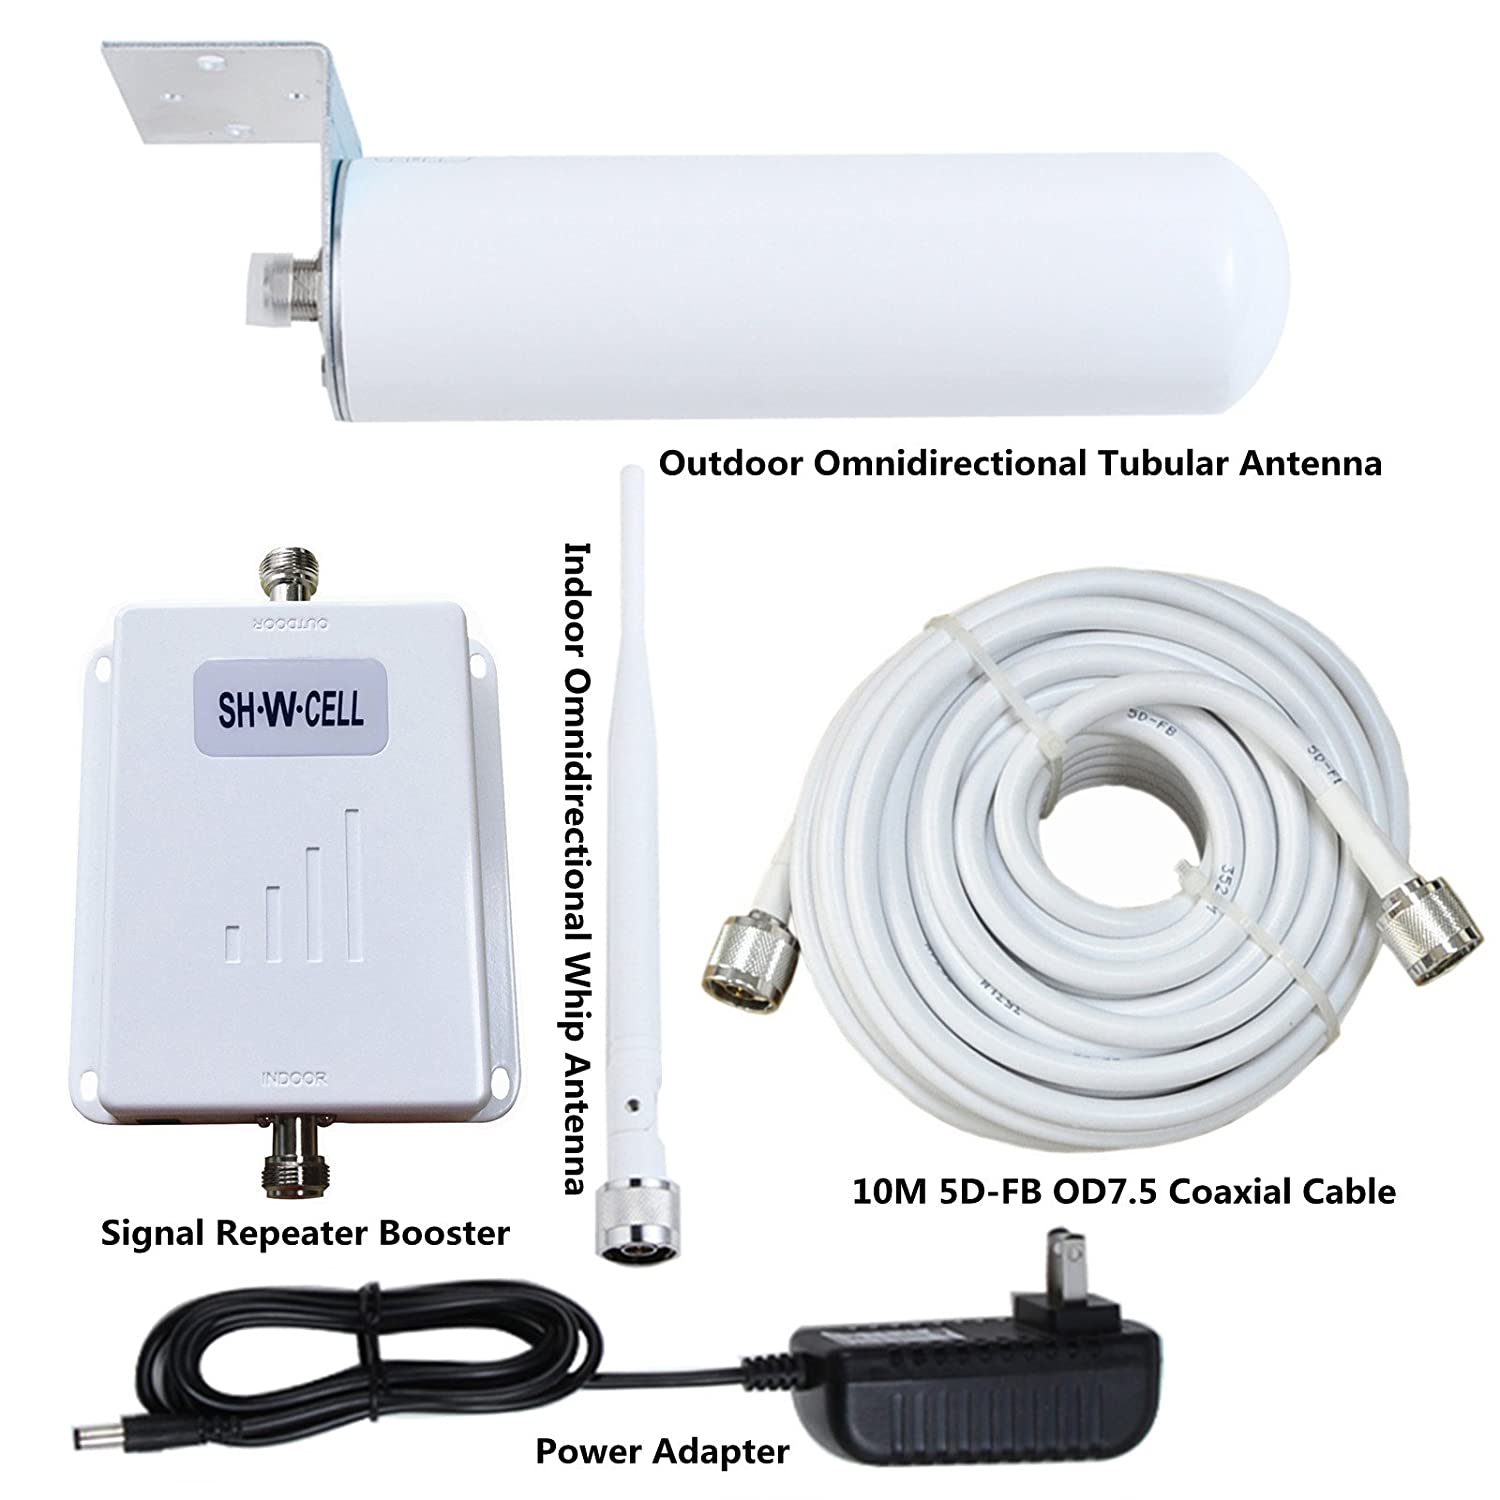 at&T T-Mobile Cell Phone Signal Booster 4G LTE Band12/17 Cell Phone Signal Amplifier ATT Cell Phone Booster Home SHWCELL Mobile Signal Repeater Dual Panel Antennas Kit DDCP1011